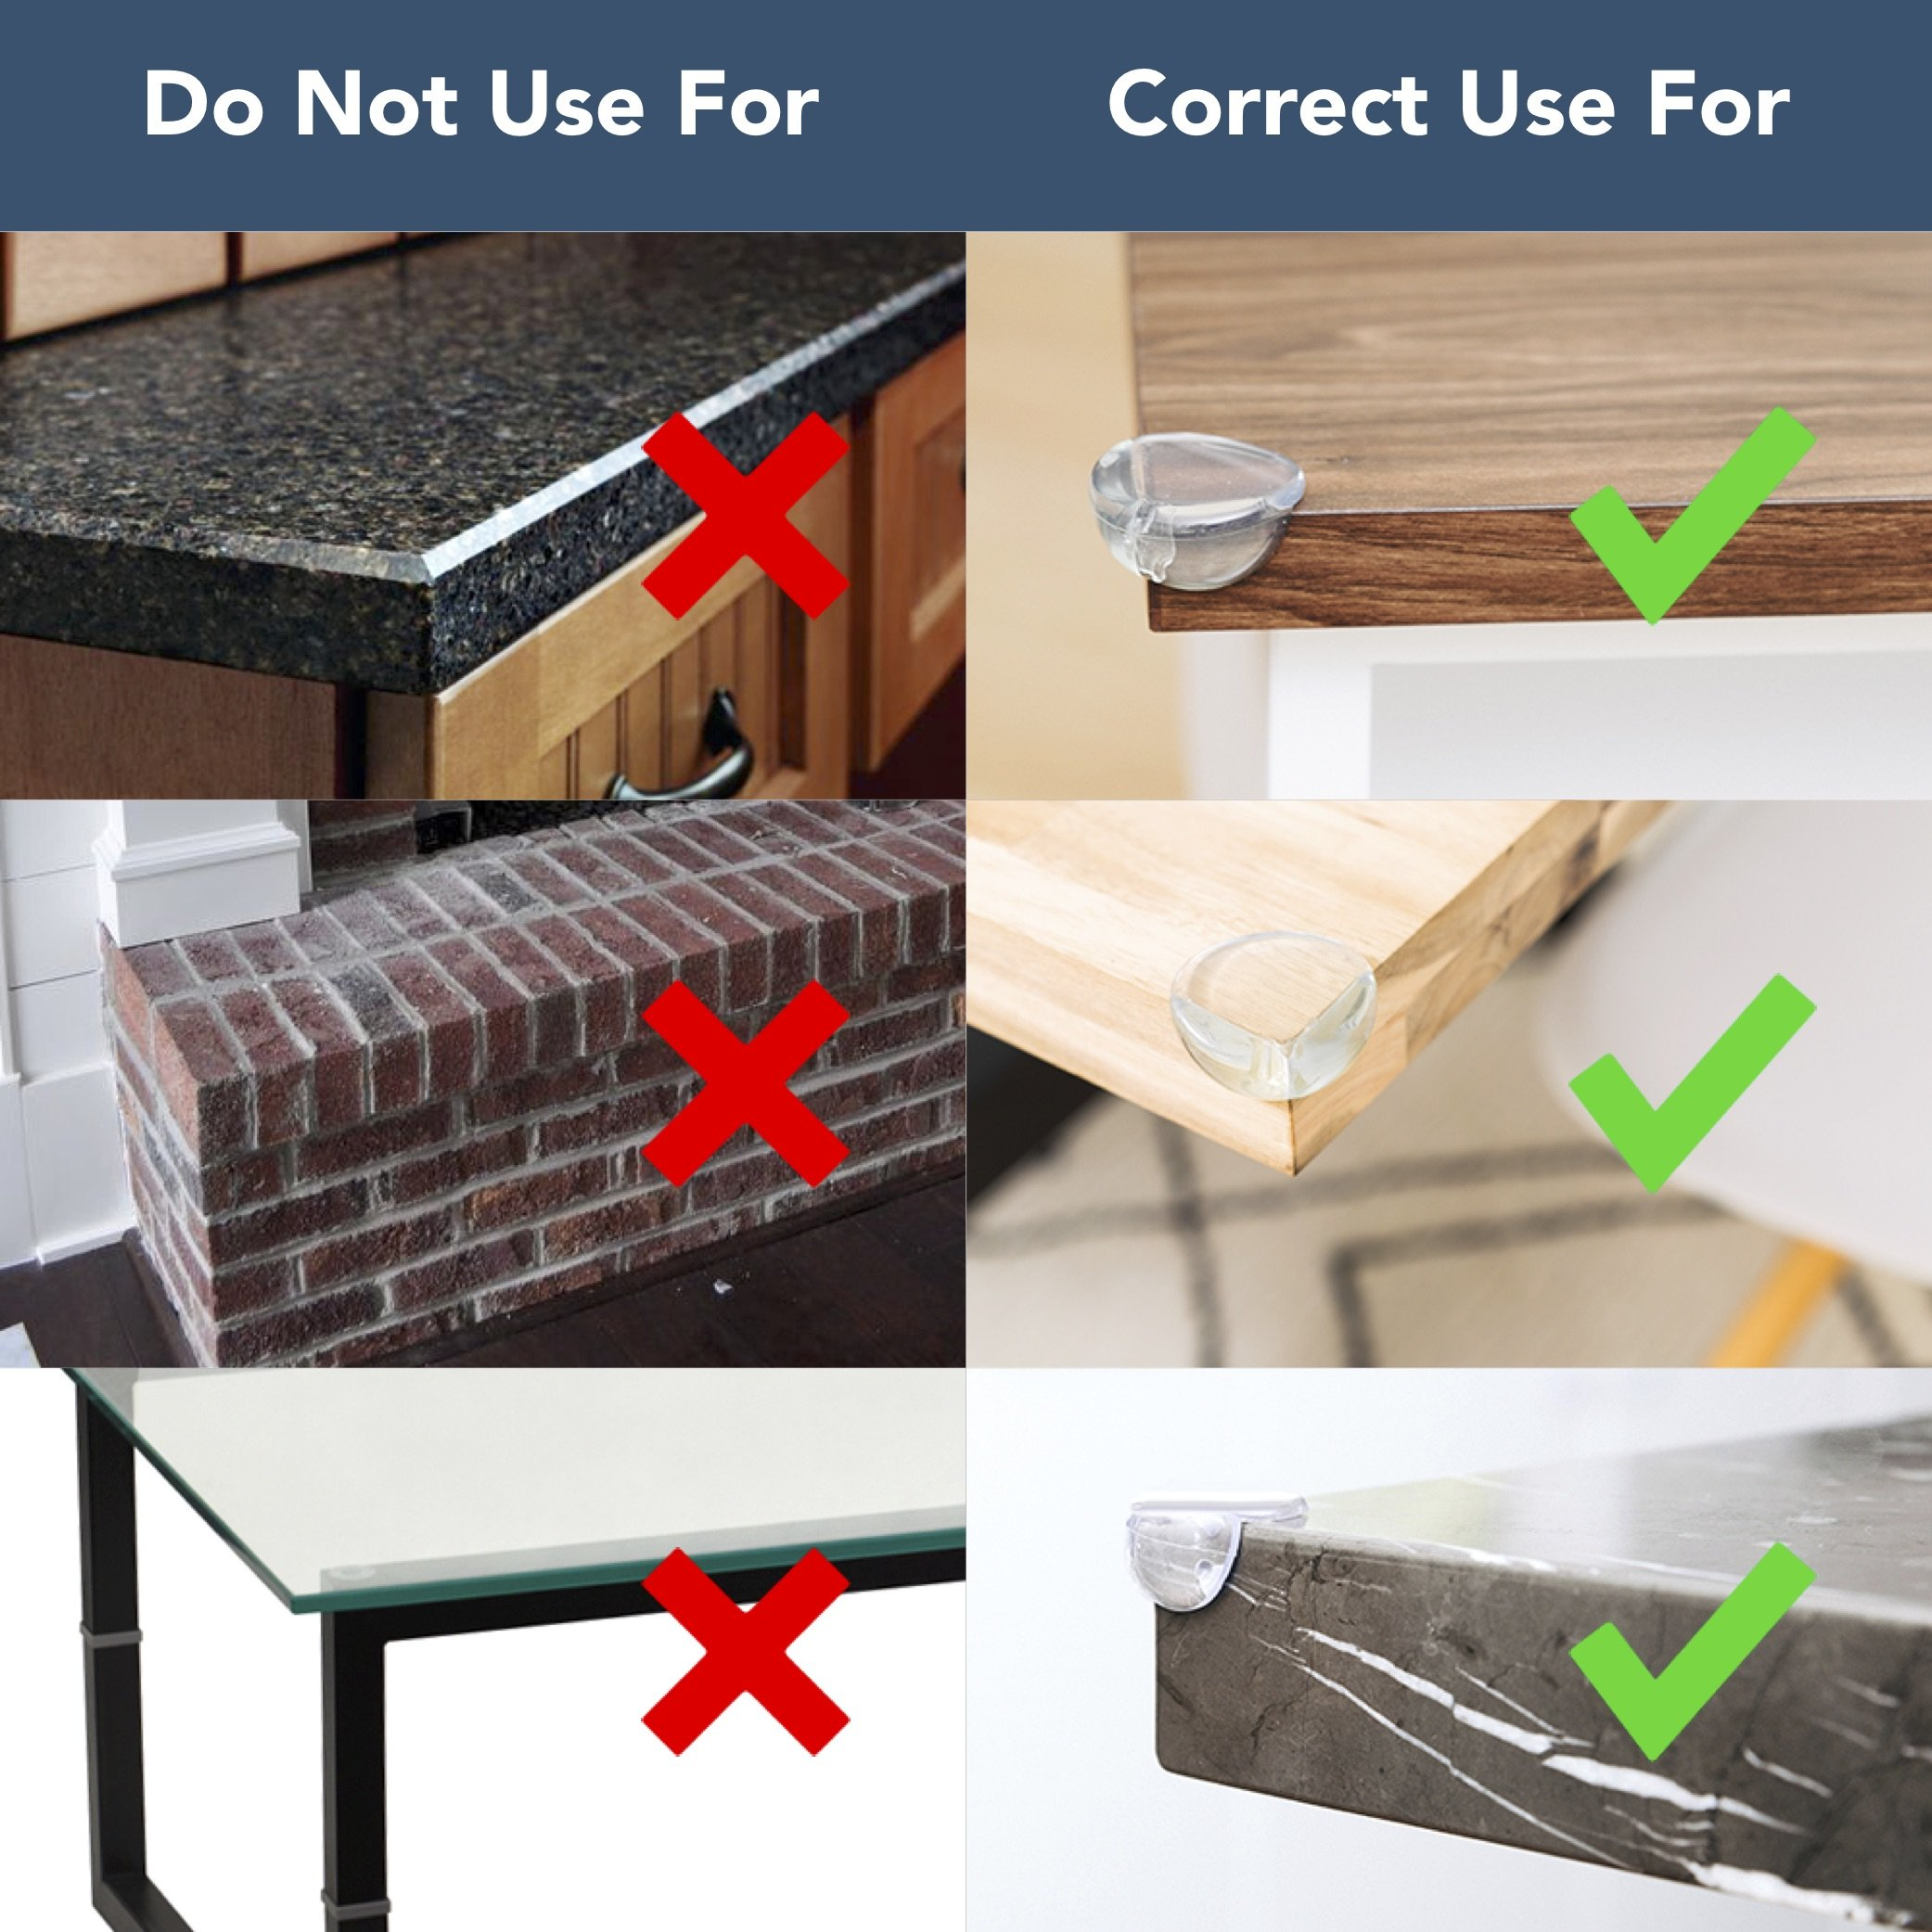 Large Clear Corner Protectors 8-Pack | Caring Corners Guards, Large Size by The Hamptons Baby | Corner Guards for Tables, Furniture & Sharp Corners | Baby Proofing | Pre-Applied Gel Adhesive by The Hamptons Baby (Image #8)